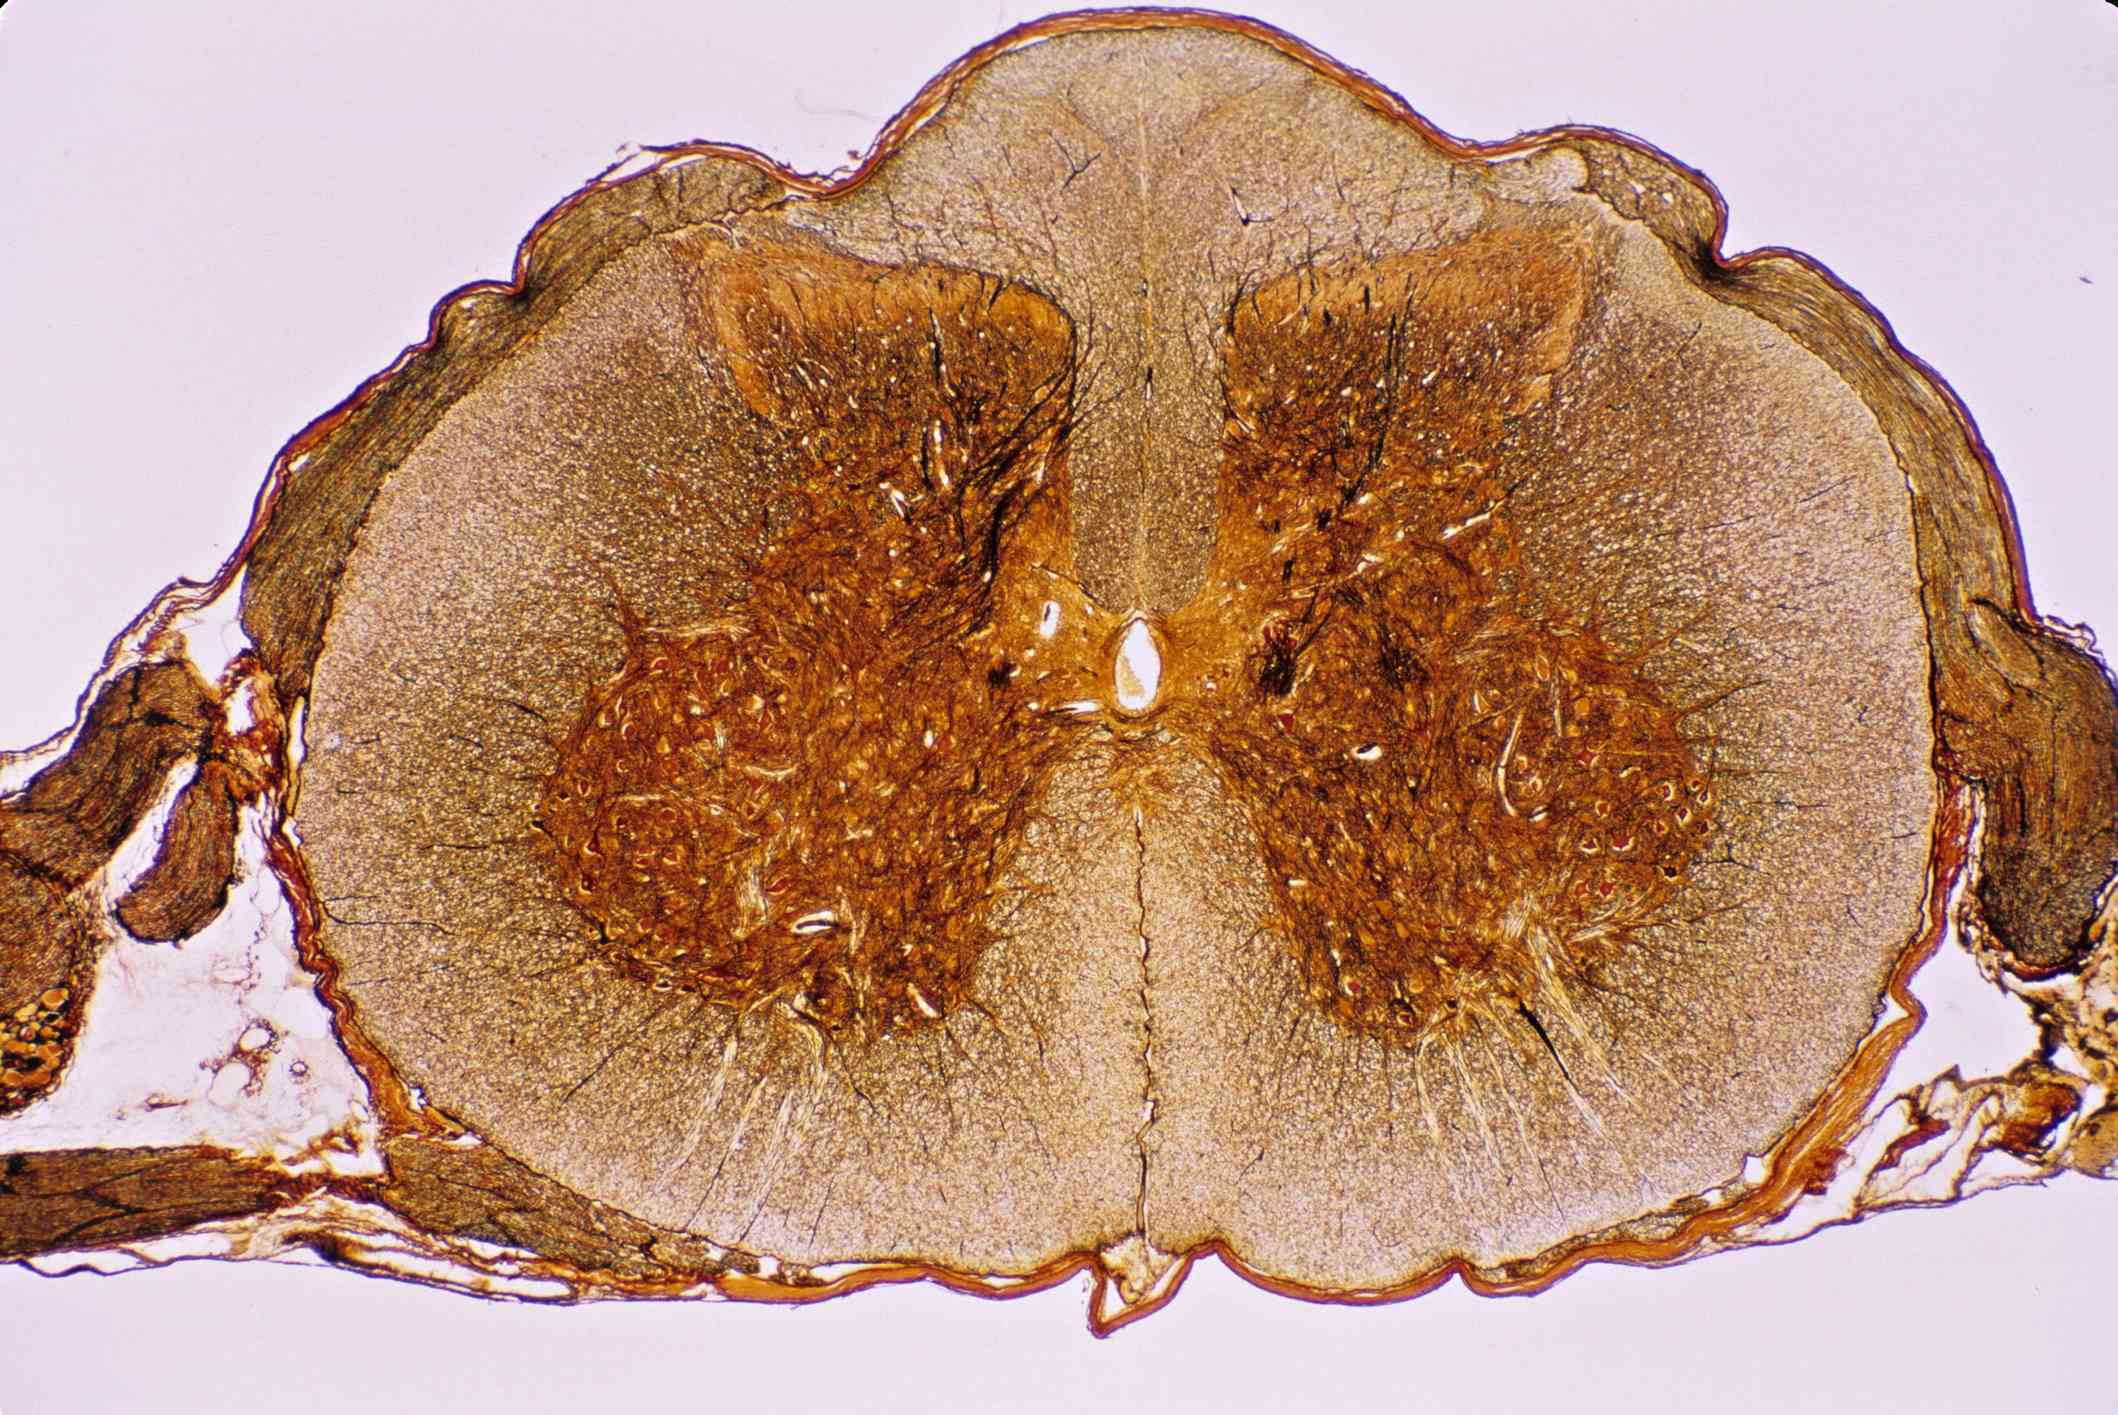 SPINAL CORD CROSS SECTION, 5X SHOWS: GRAY MATTER (GOLDEN BUTTERFLY), WHITE MATTER, CENTRAL CANAL, DORSAL & VENTRAL ROOT, DORSAL ROOT GANGLION, MENINGES, DORSAL HORN, VENTRAL (ANTERIOR) HORN, & ANTERIOR HORN CELLS (MOTOR NEURON CELL BODIES) - stock photo